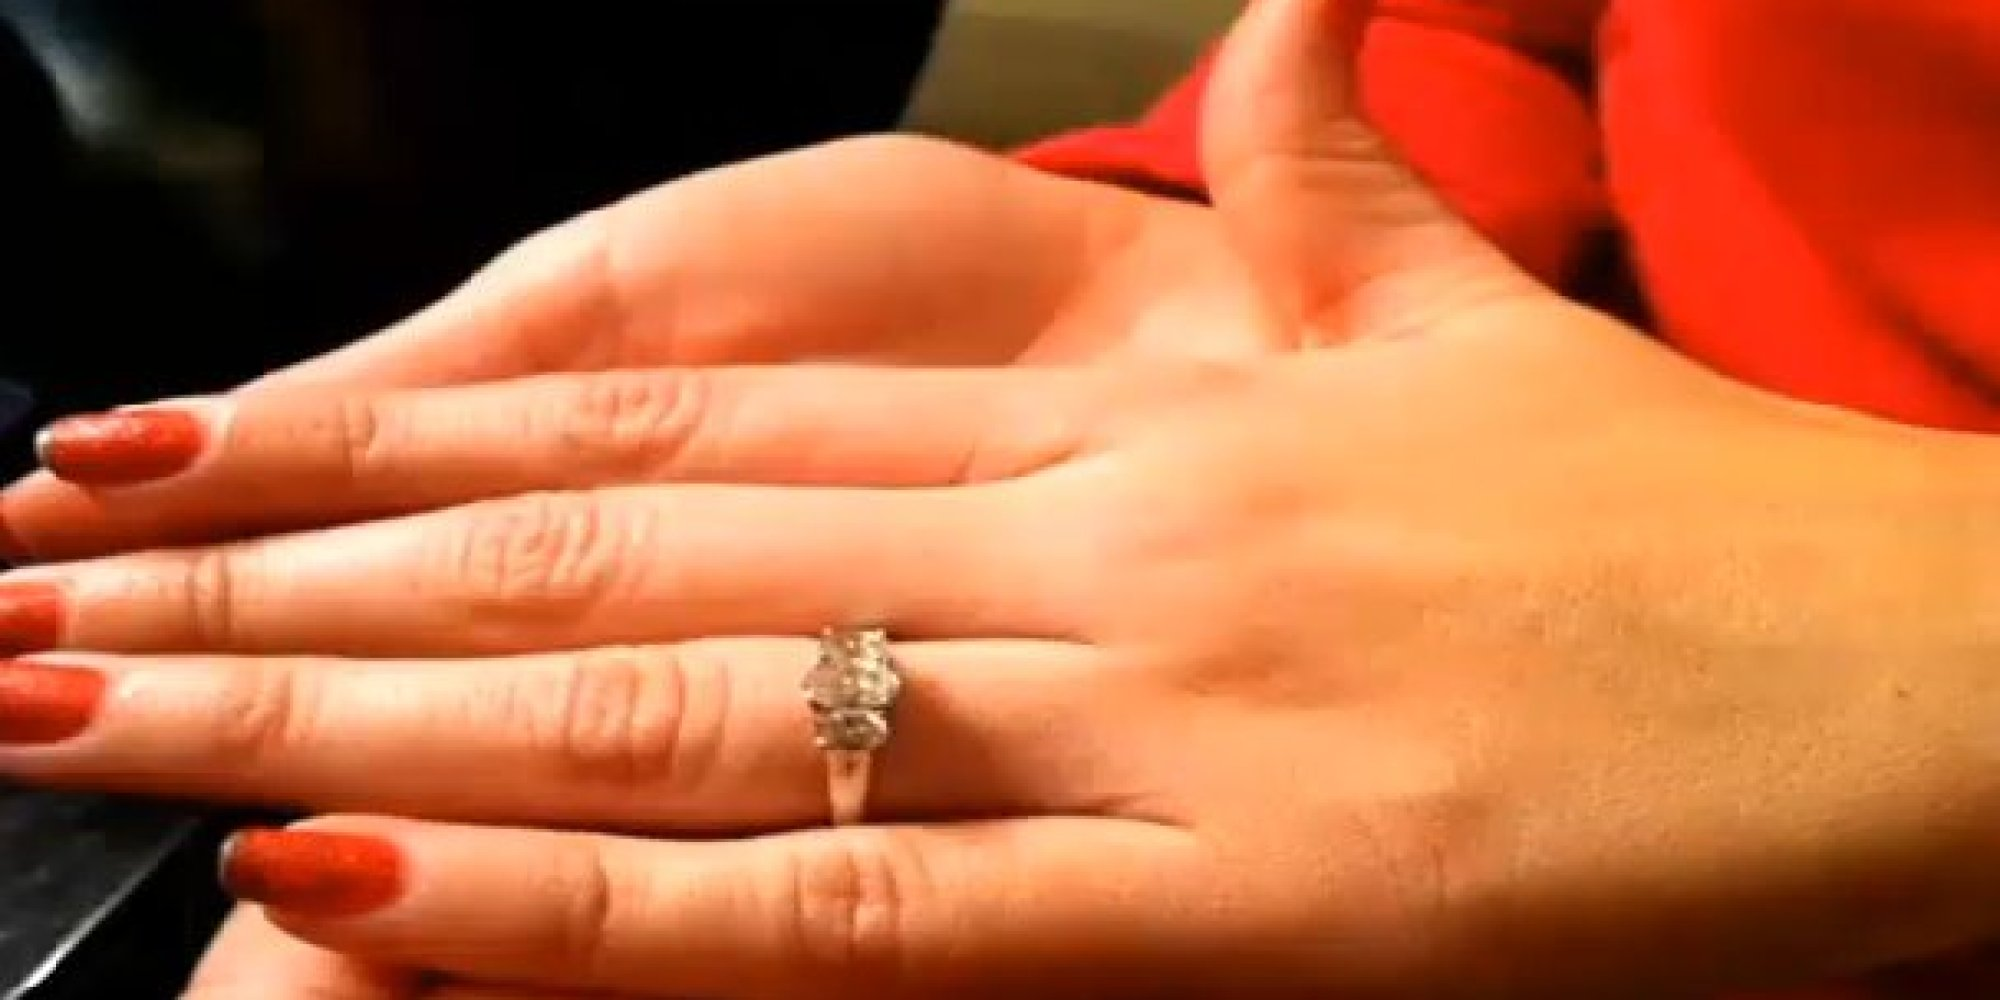 engagement ring back seat car n wonder woman wedding ring 6 Years Later Couple Finds Lost Engagement Ring In Back Seat Of Fraternity Brother s Car HuffPost